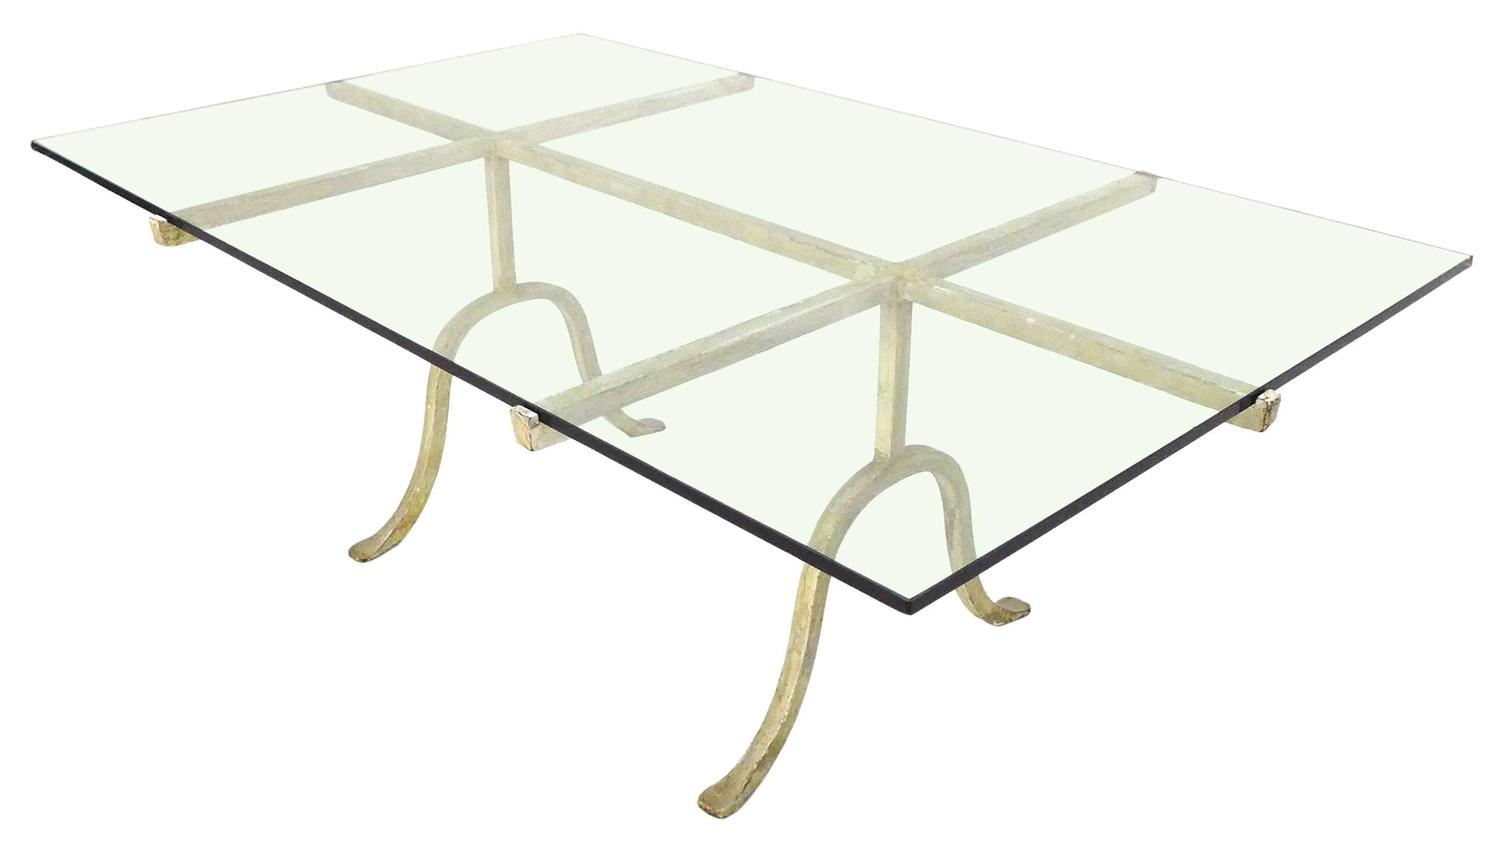 wrought iron and glass coffee table sets wrought iron and glass coffee table at 1stdibs